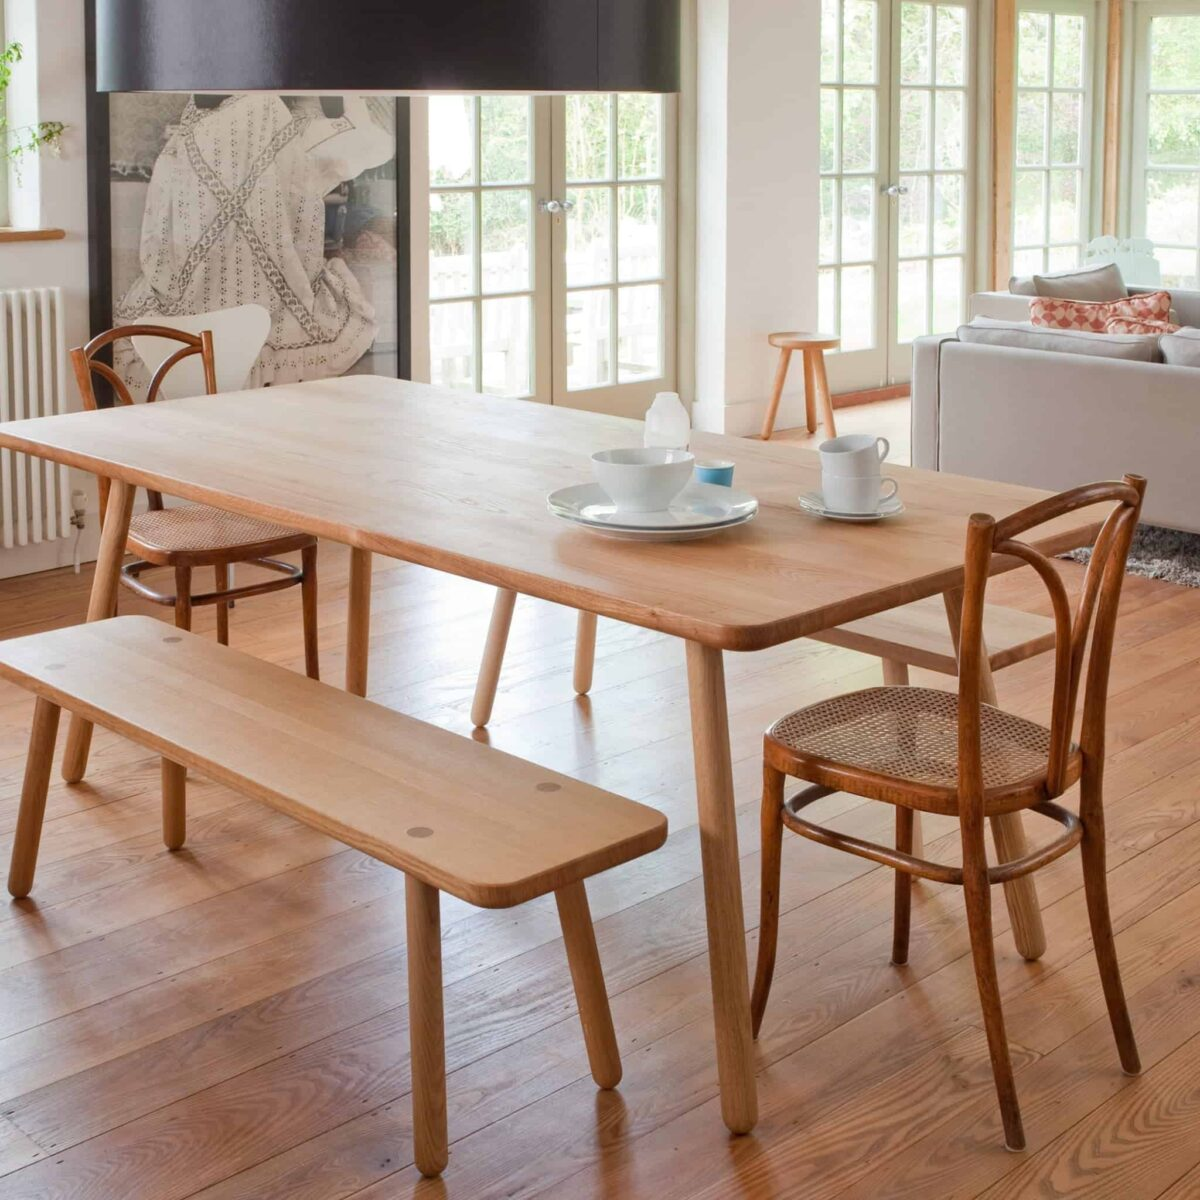 dining-table-one-another-country-oak-002